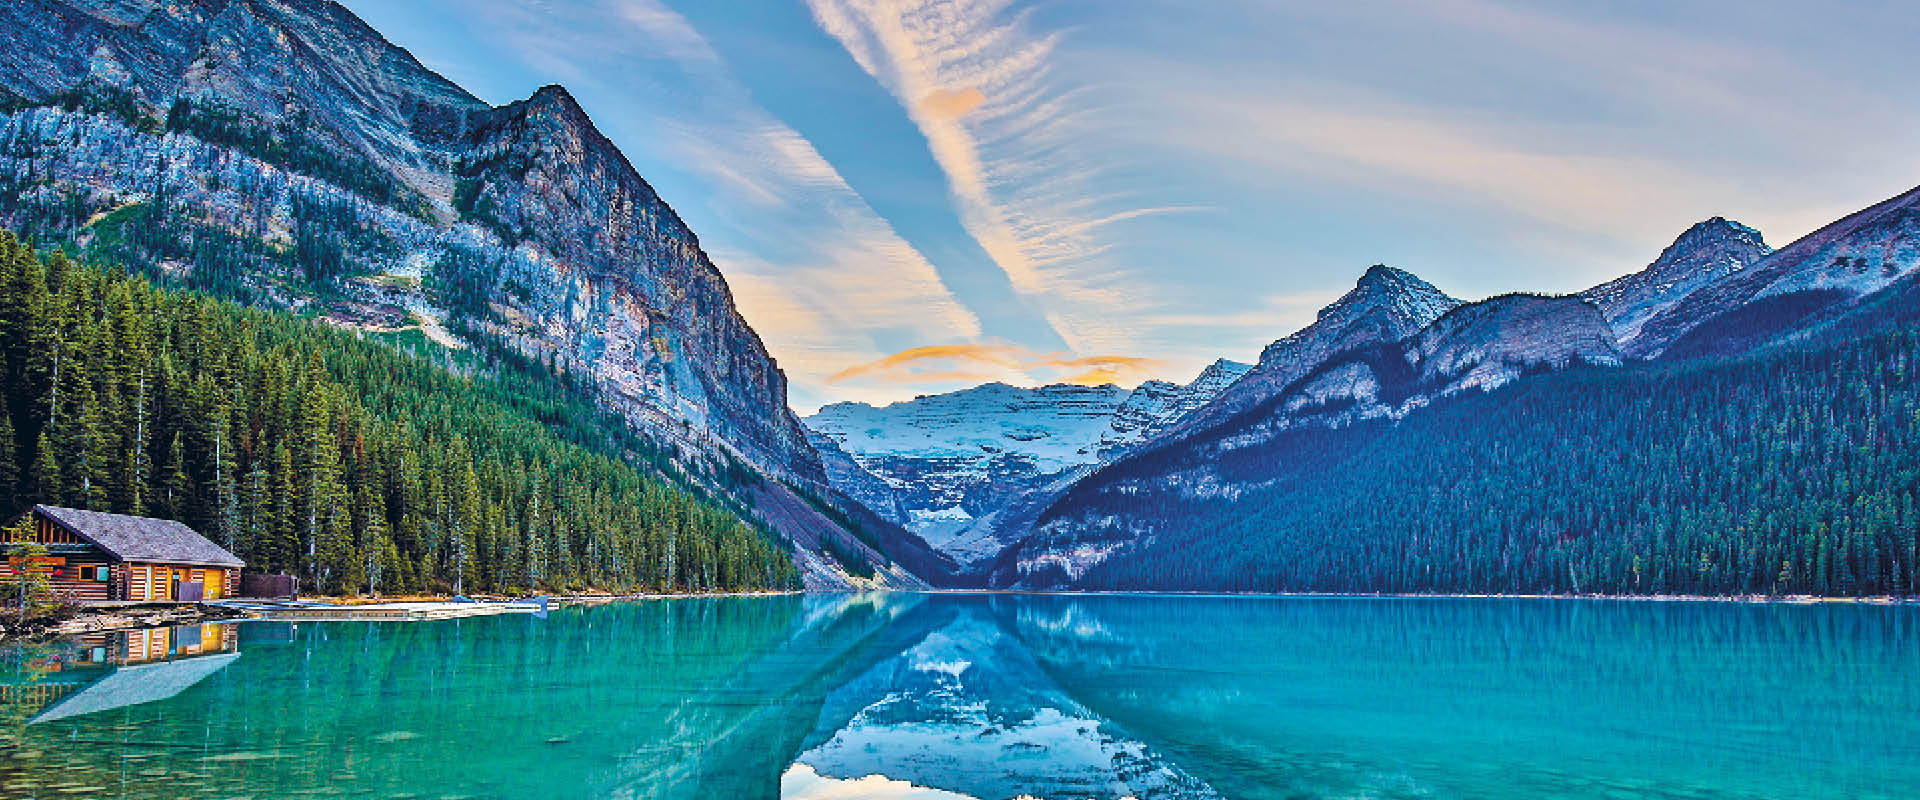 Magnificent Canadian Rockies And Alaskan Cruise